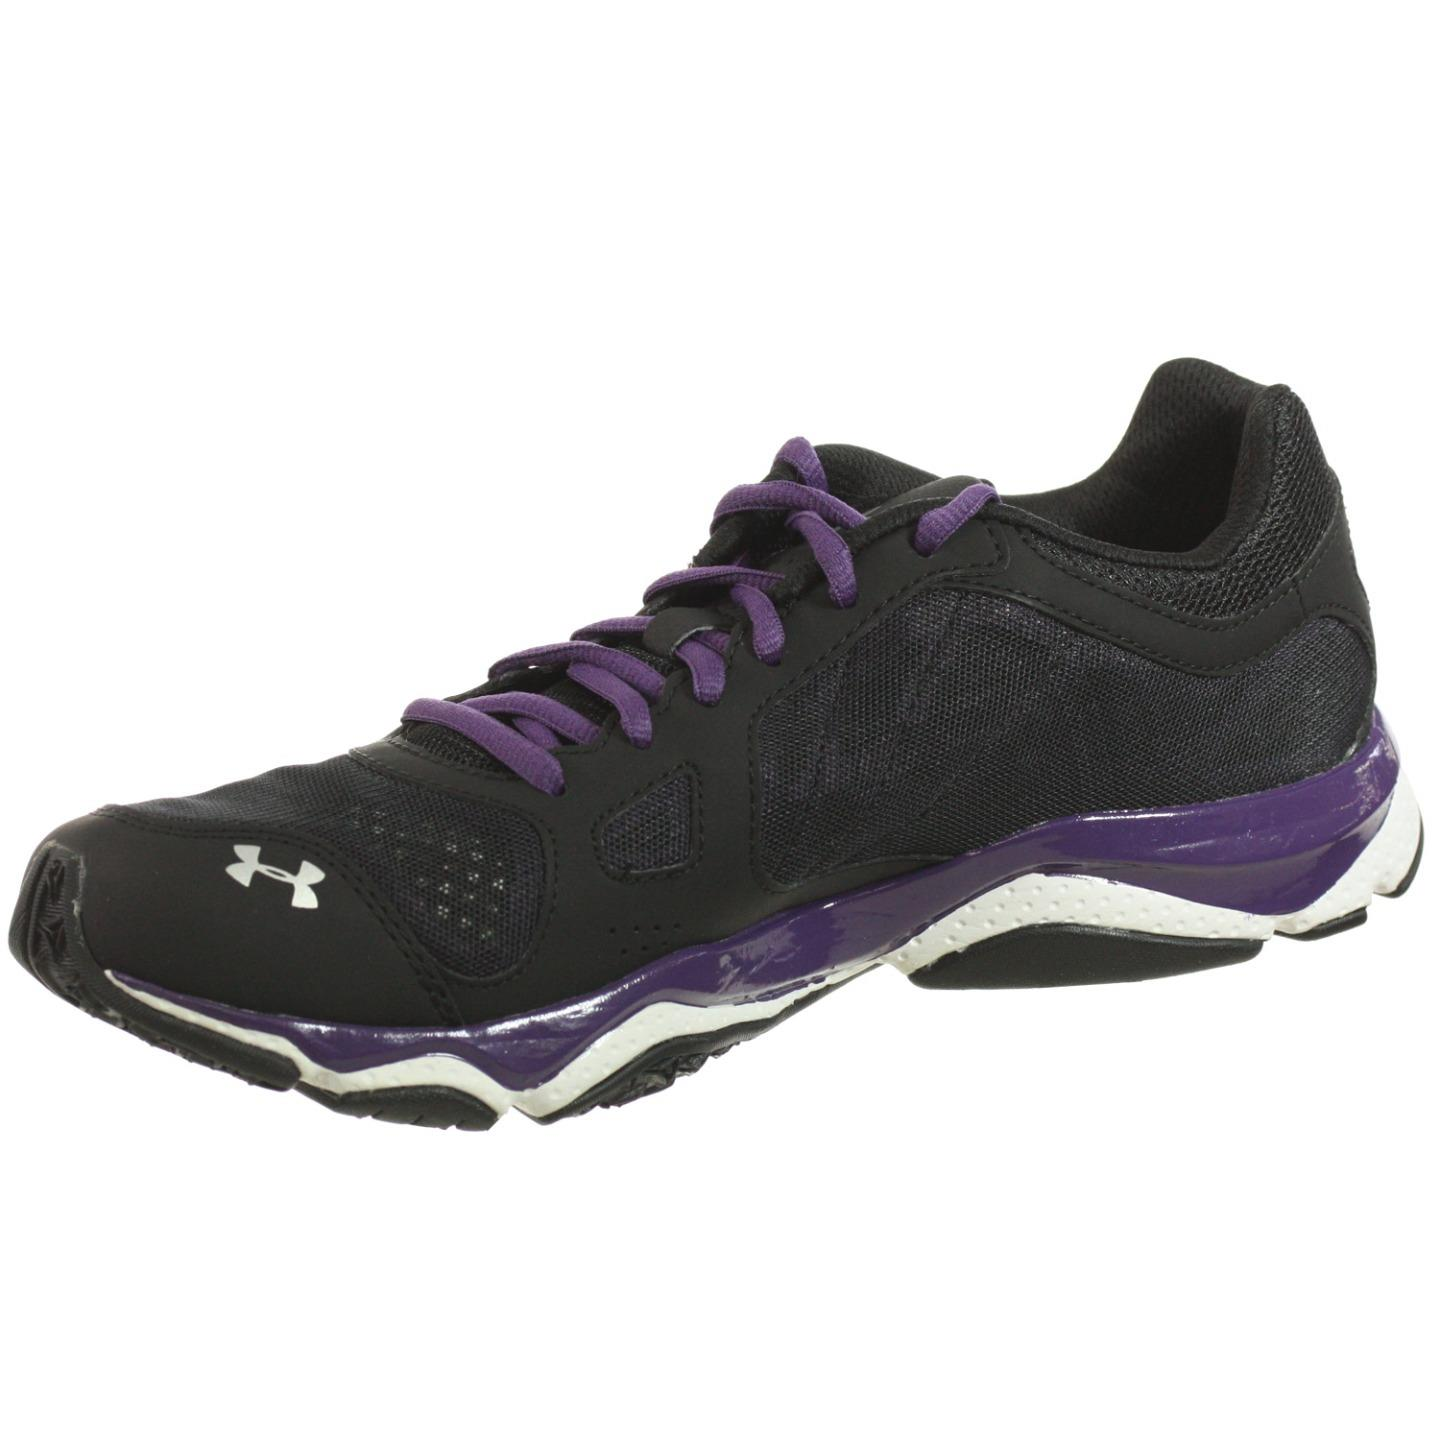 UNDER ARMOUR MENS ATHLETIC SHOES MICRO G TEAM PULSE TR BLACK PURPLE WHITE  9.5 M - Walmart.com